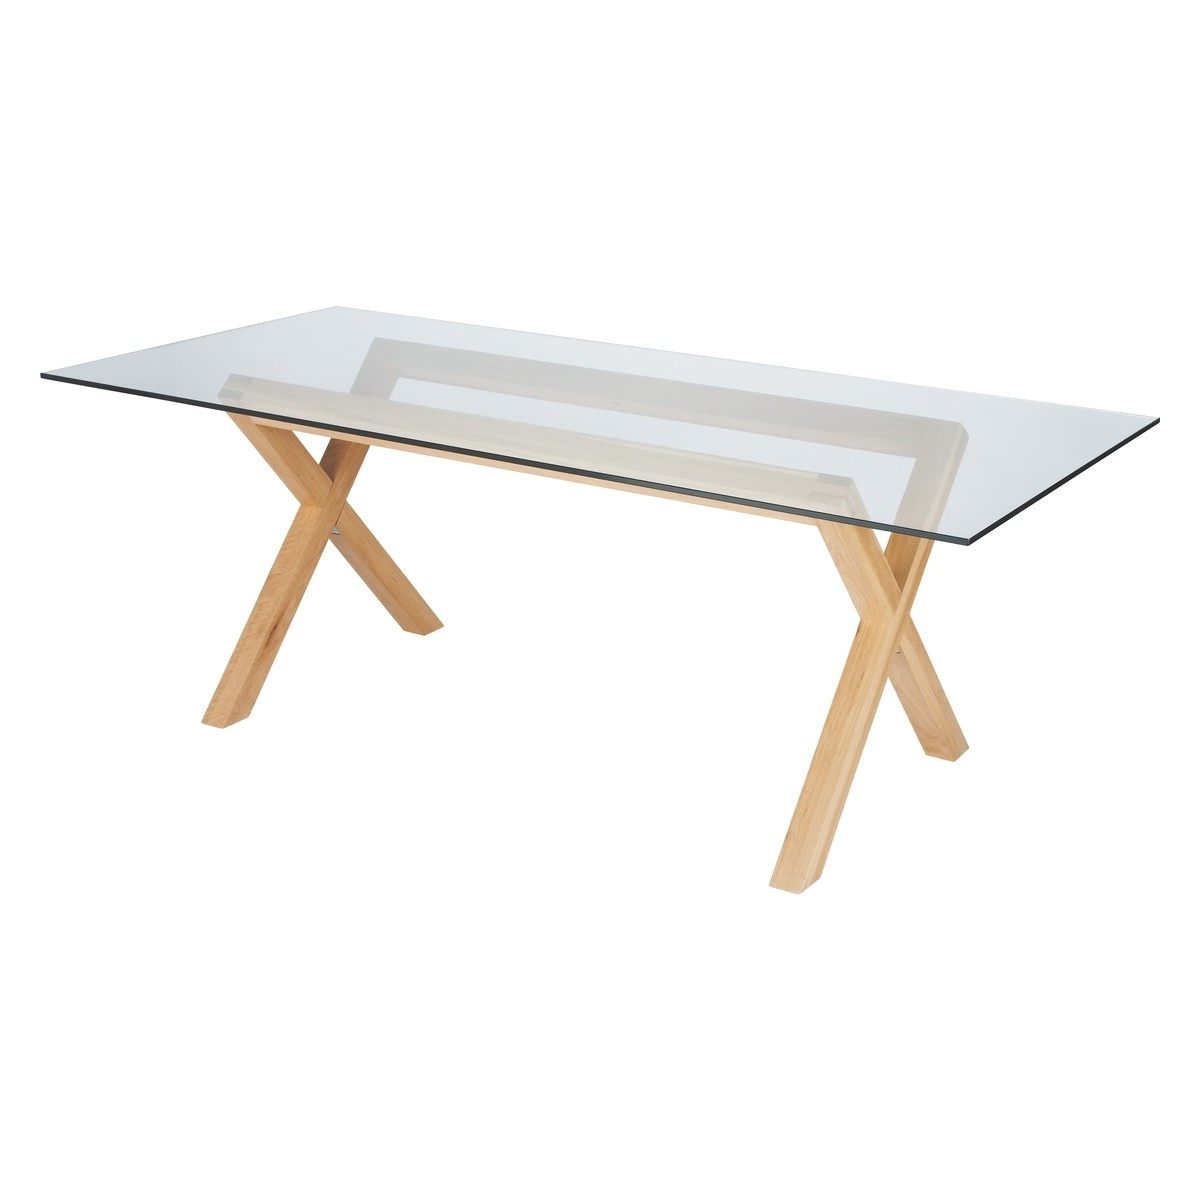 Favorite Dublin 8 Seater Oak And Glass Dining Table (View 5 of 25)